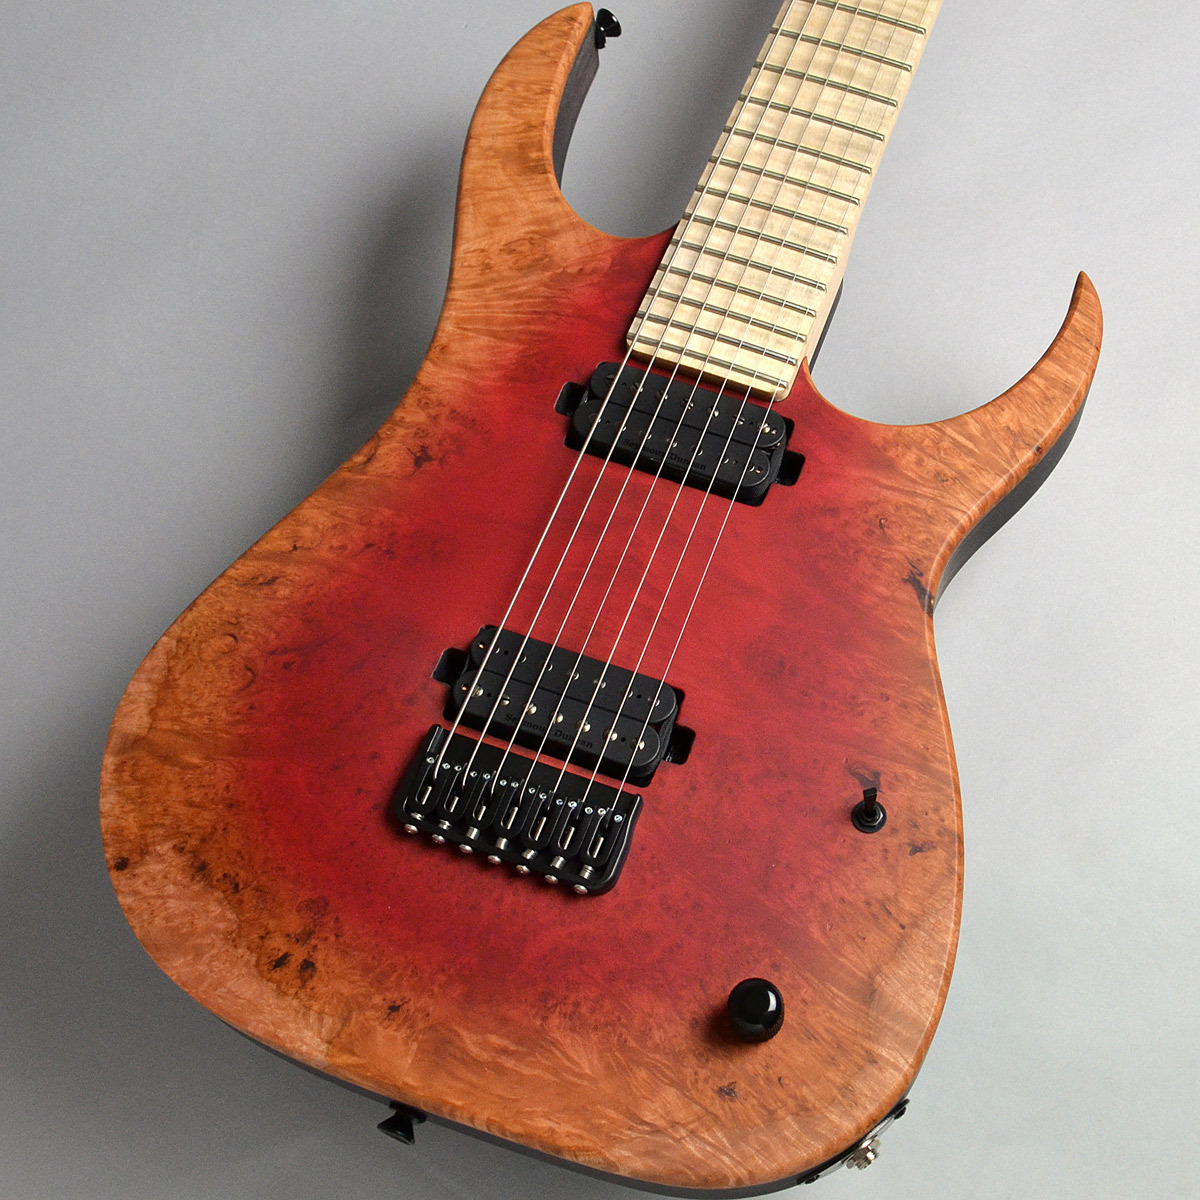 Strictly 7 Guitars Cobra Special 7 HT/B Poplar Burl / Red Burst Matte エレキギター(7弦) 【ストリクトリー7ギターズ】【新宿PePe店】【楽器フェア2018モデル】